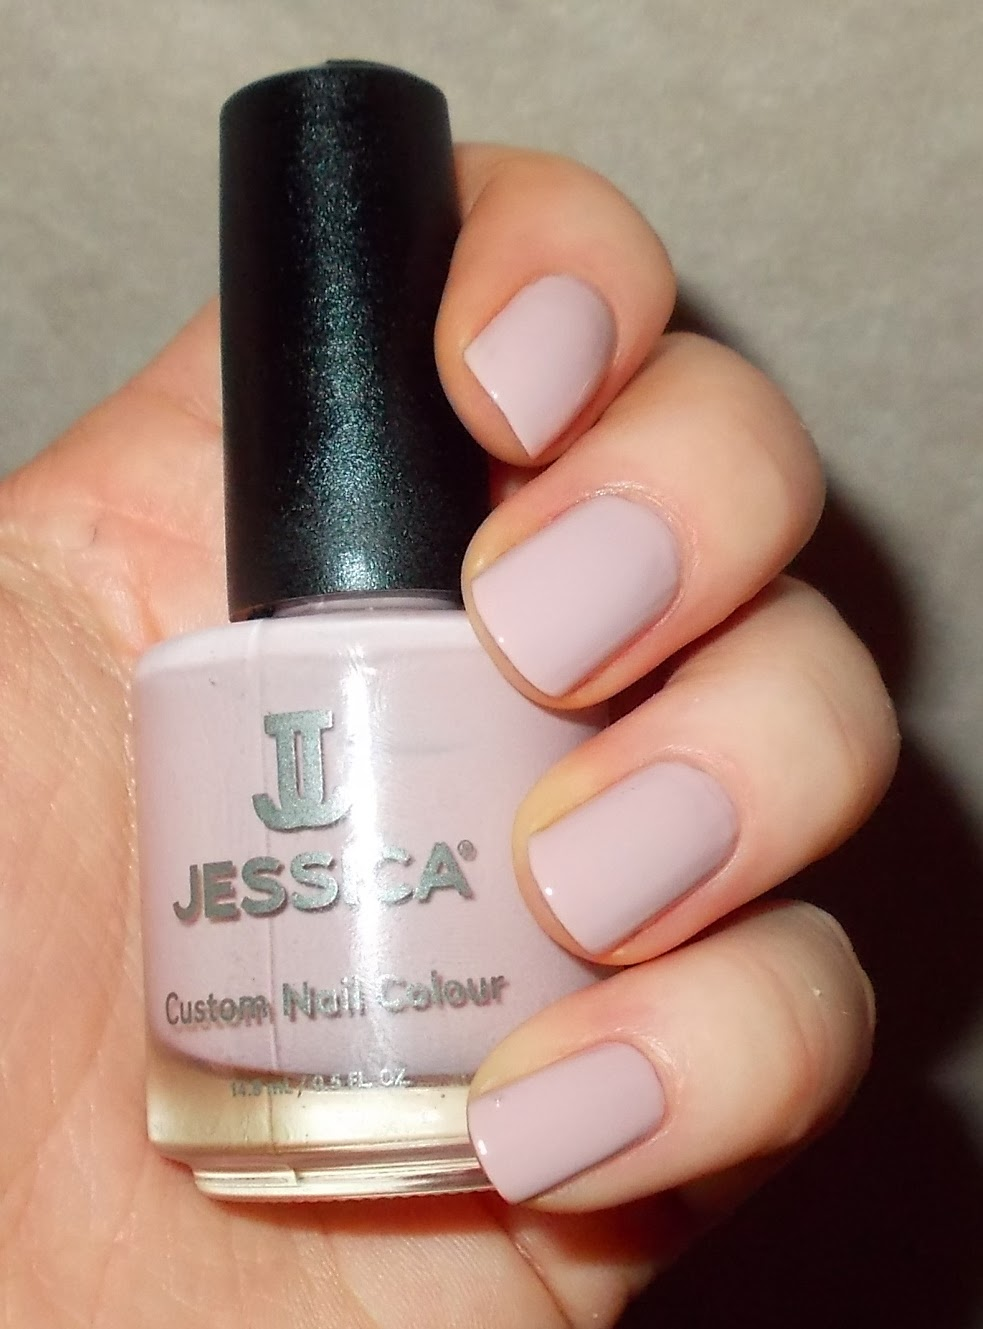 Unred Me Not Jessica Custom Nail Color In 723 Soar